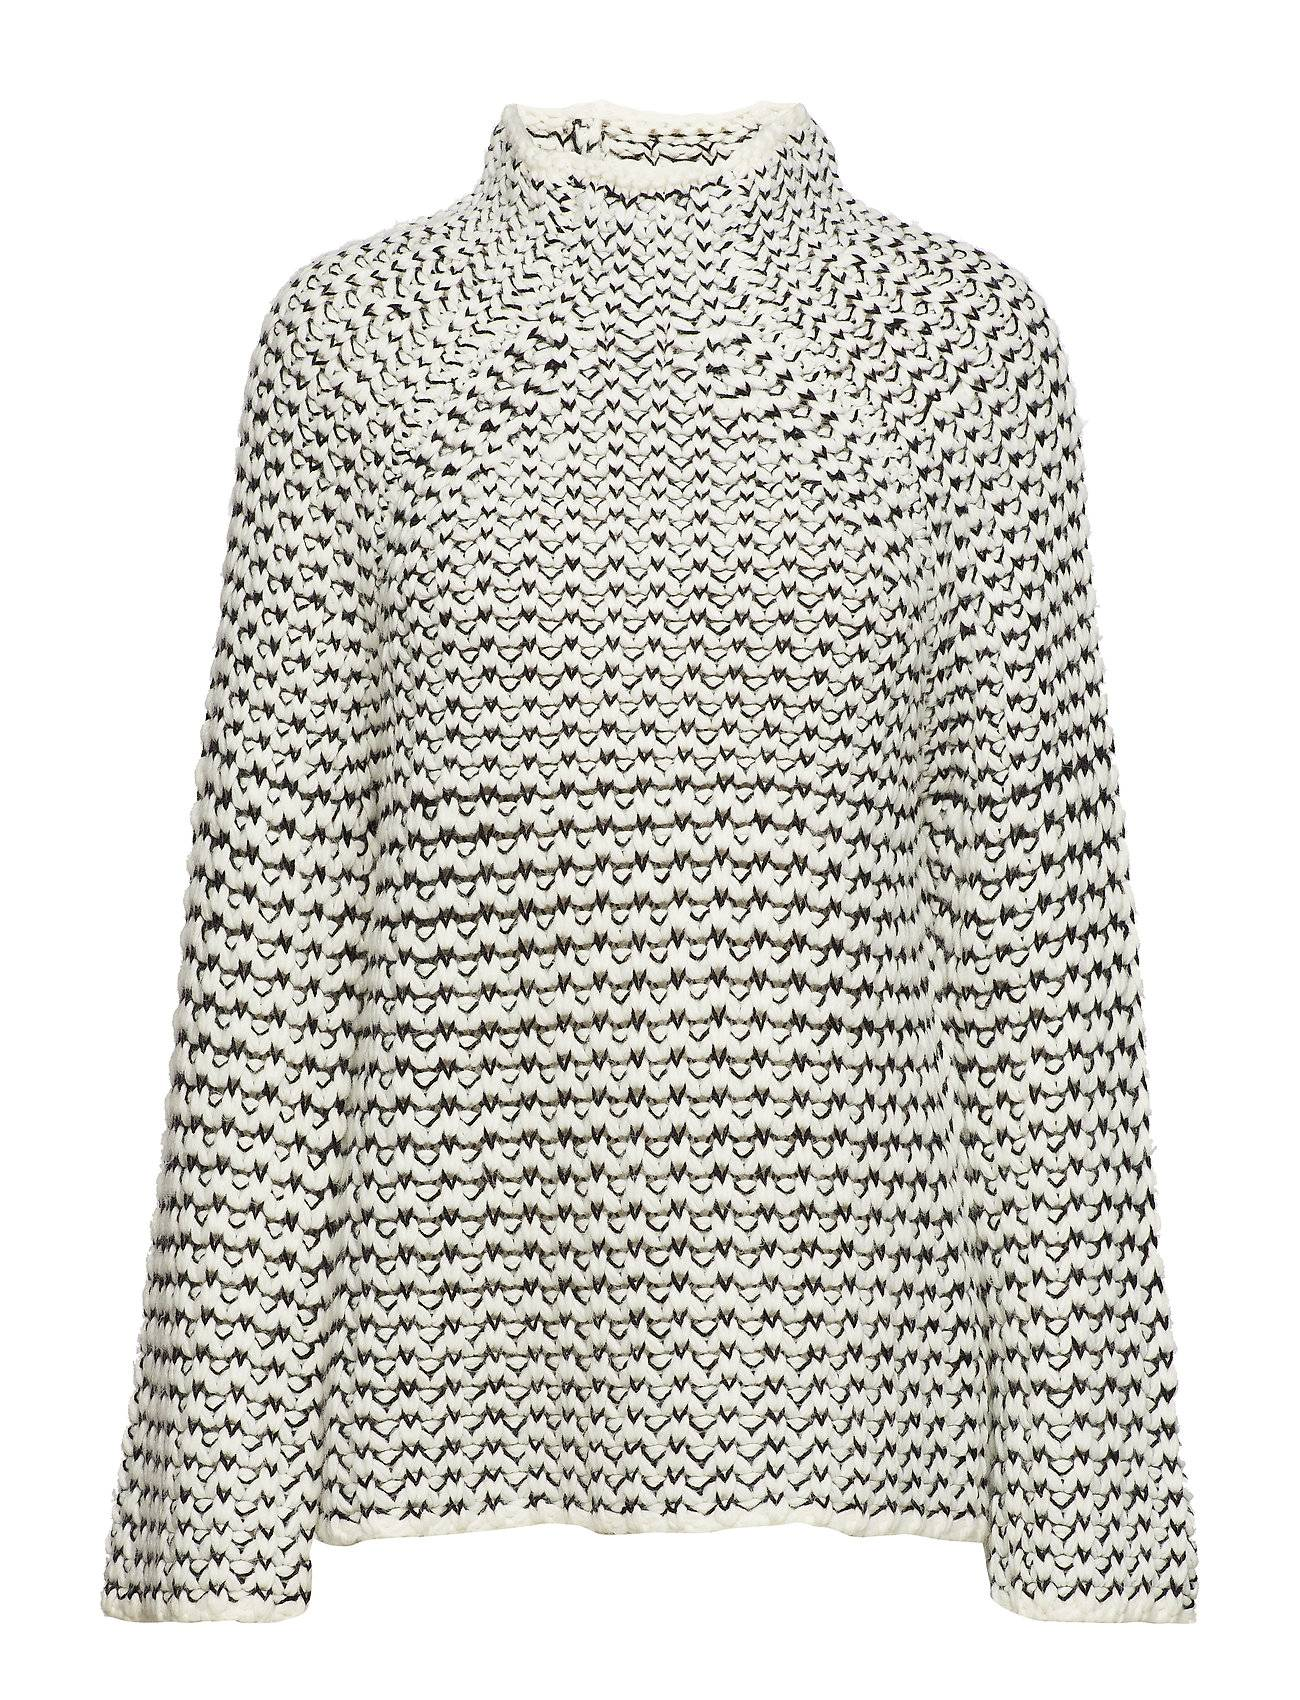 French Connection Zoe Knits High Nck Tunic Jmpr